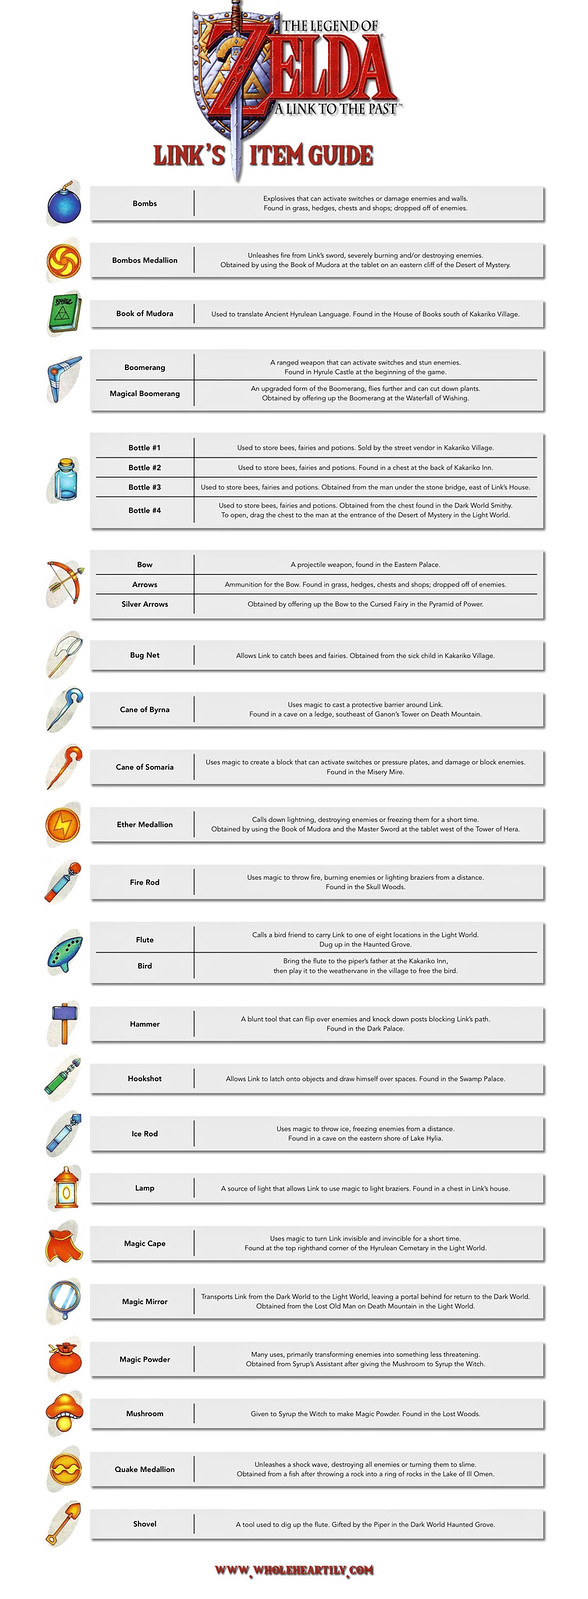 Link's Items Guide